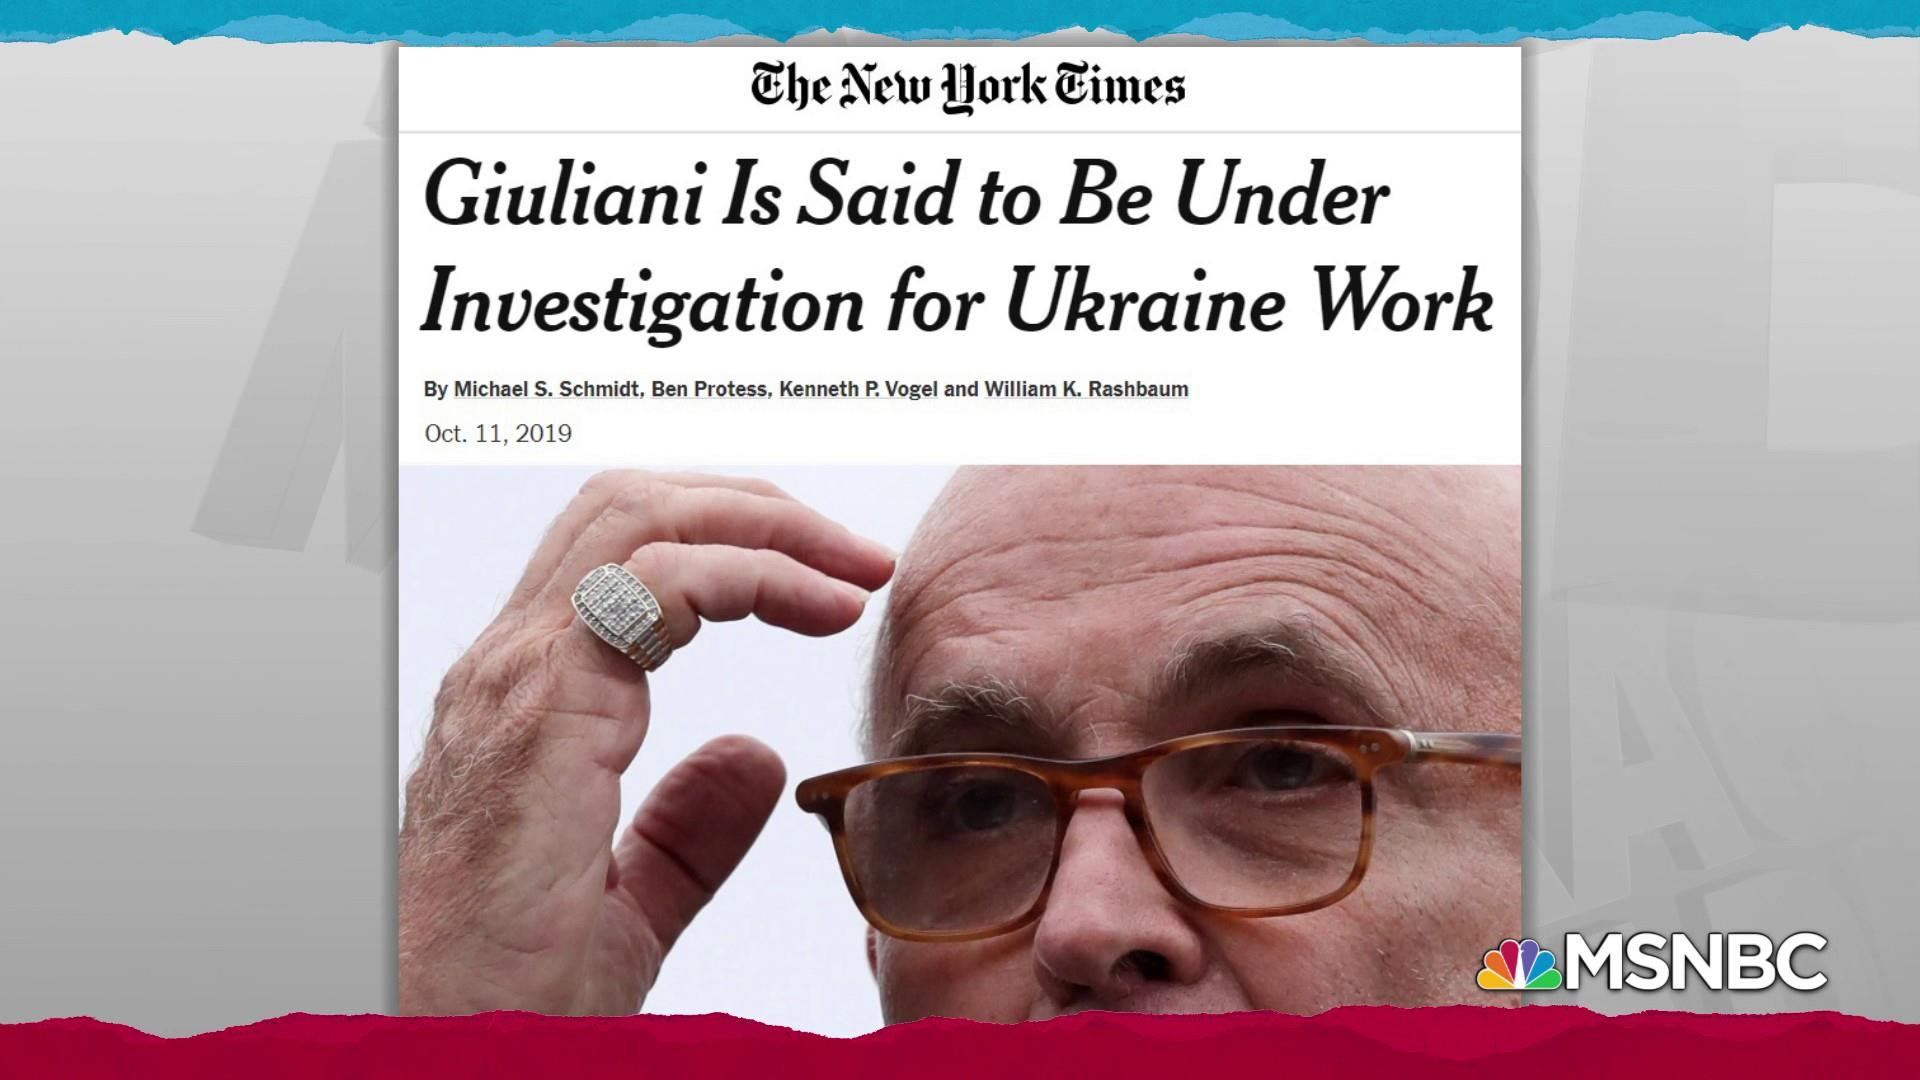 Giuliani under investigation for breaking lobbying laws: NYT